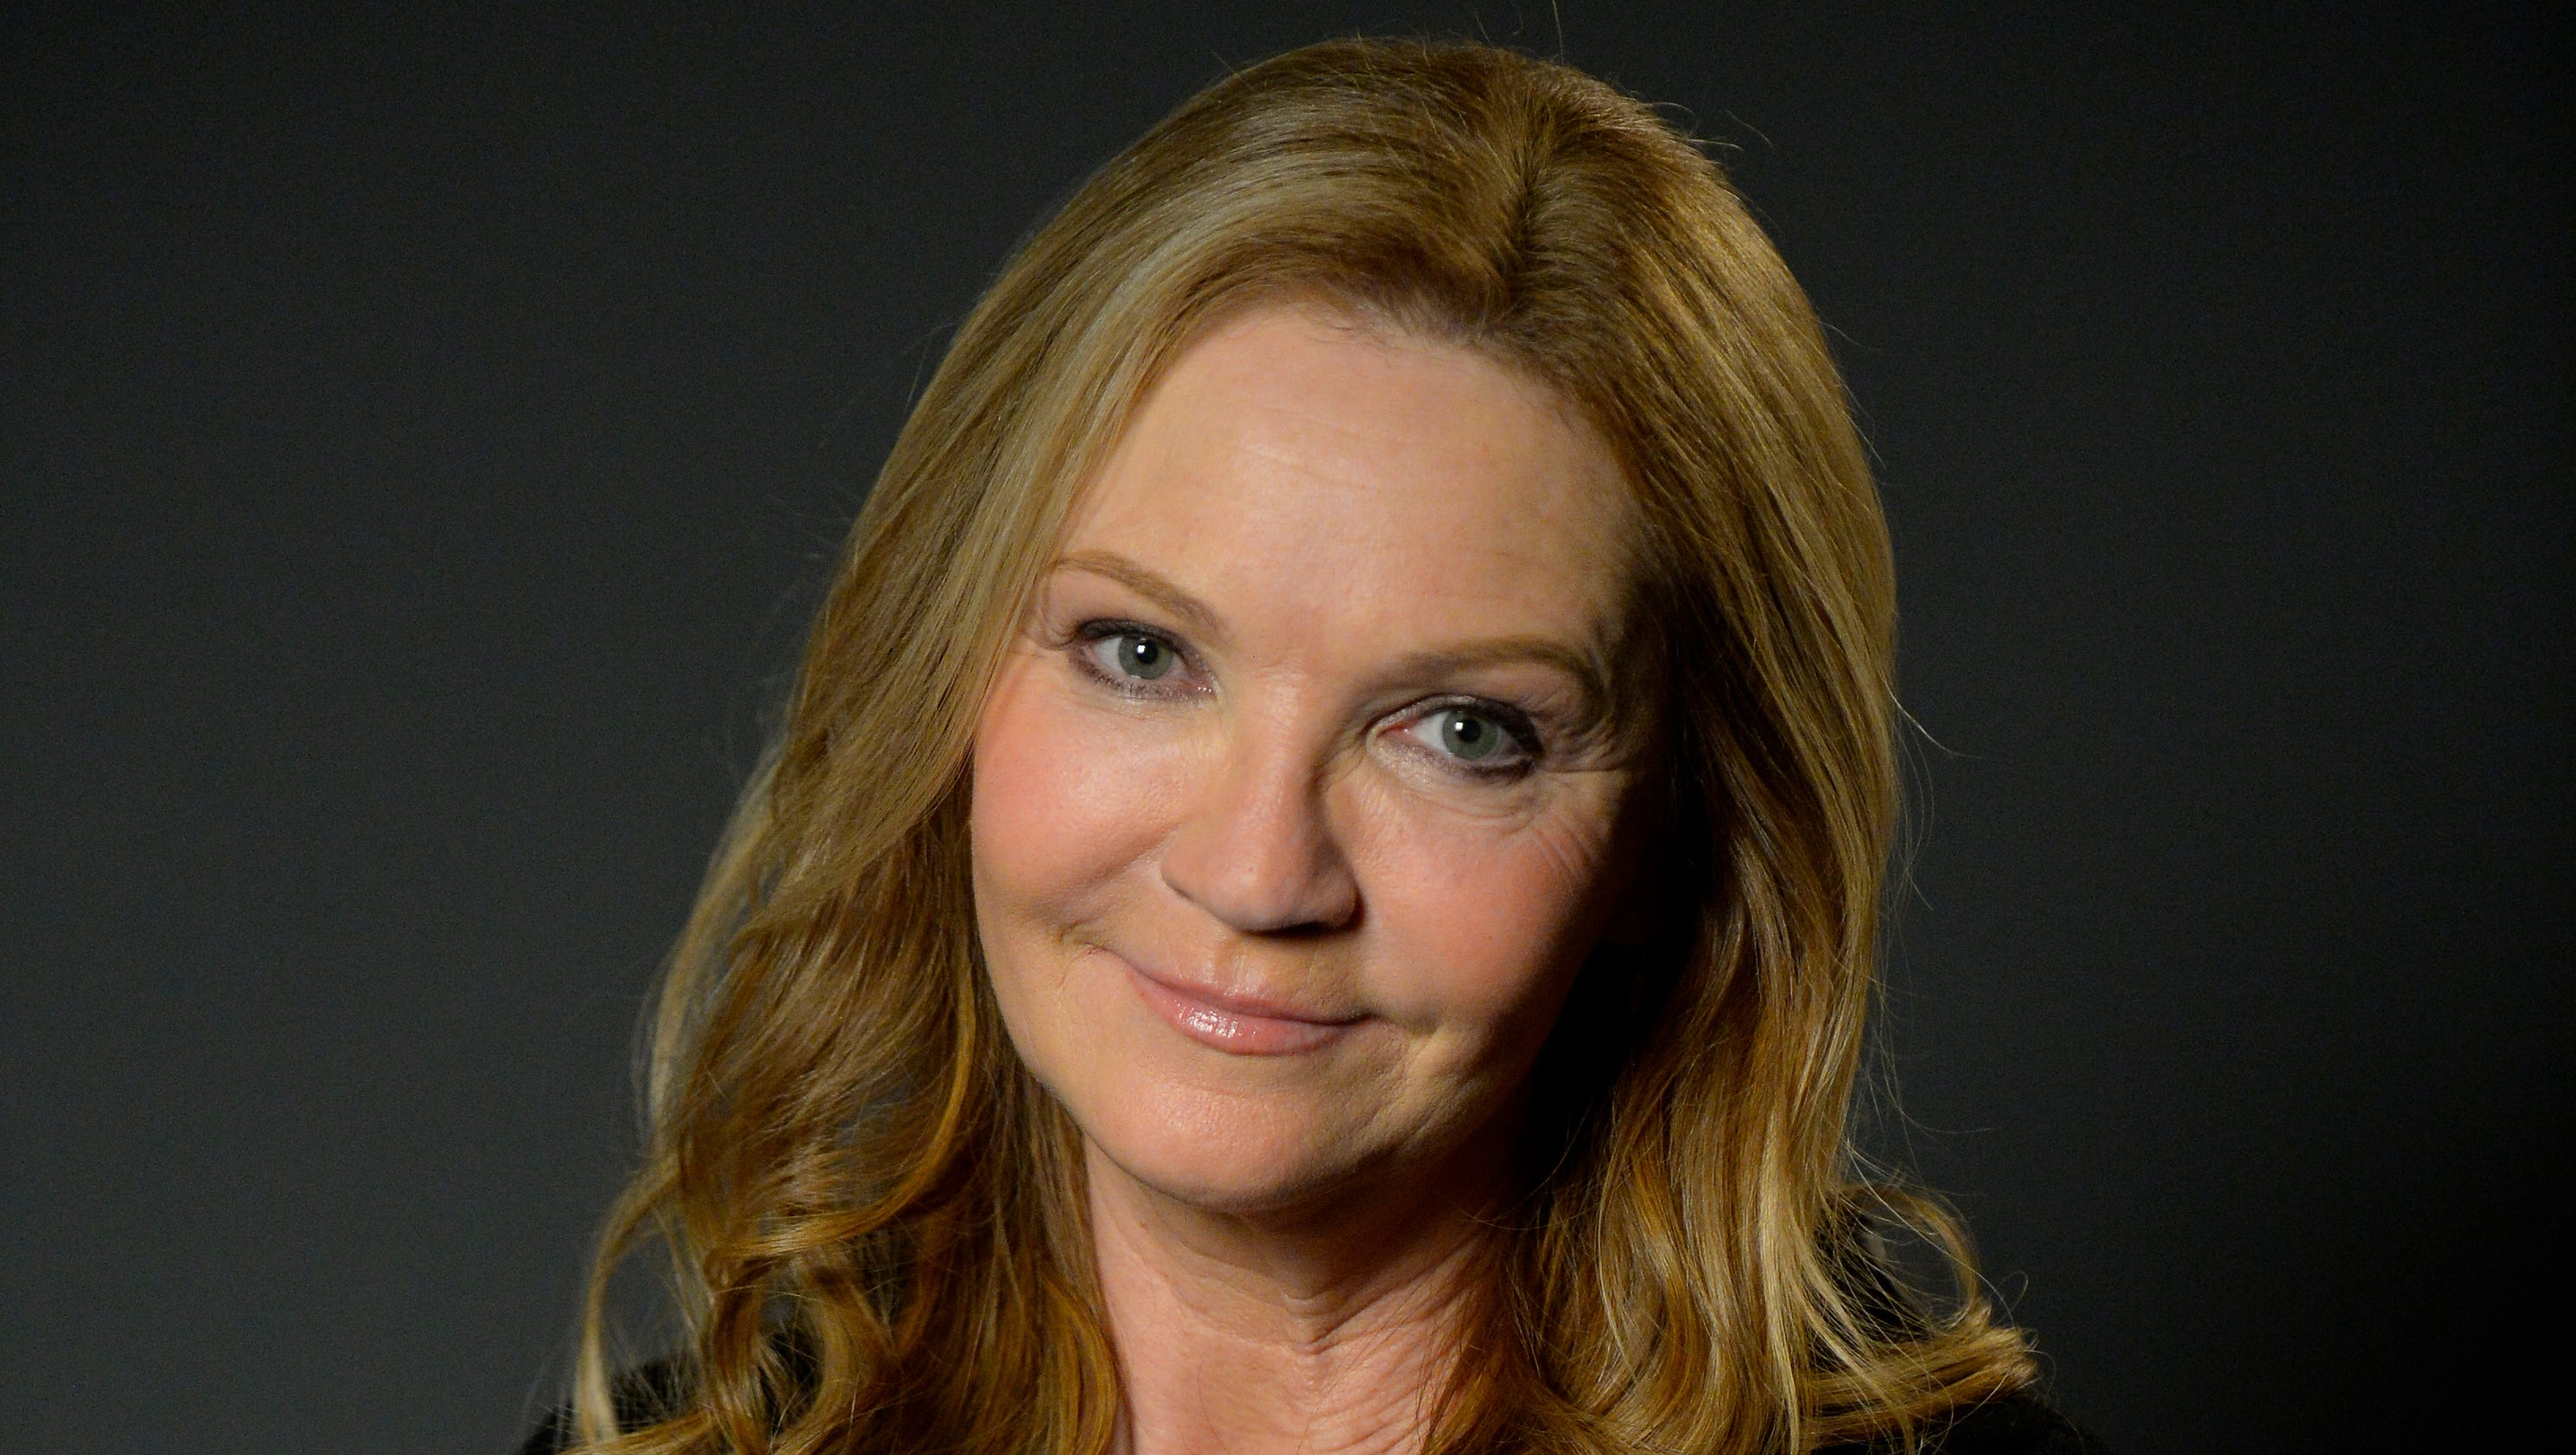 Joan Allen: From Brie Larson's 'Room' to ABC's 'Family'